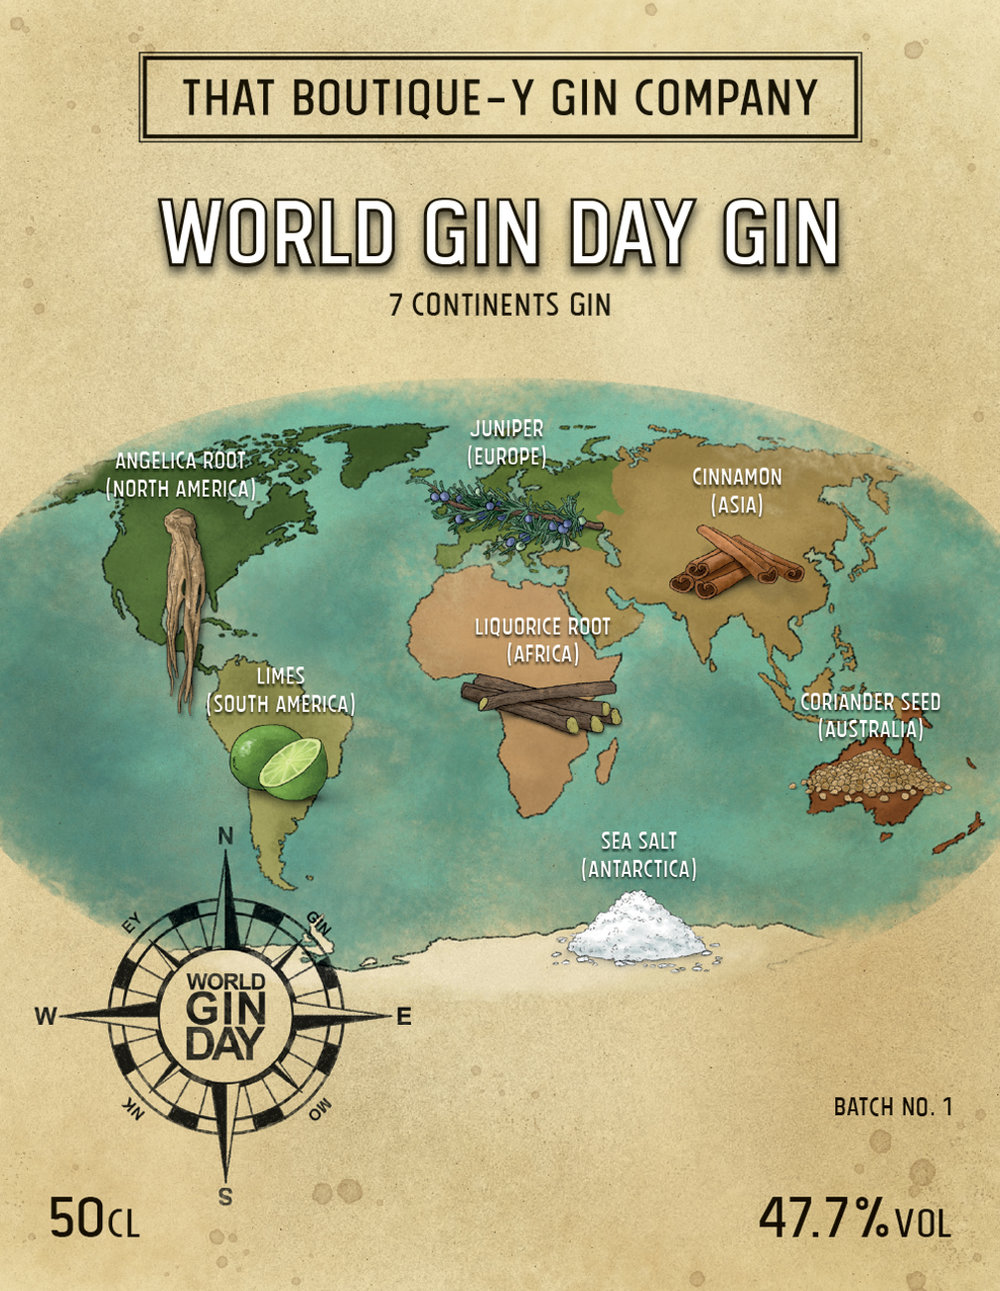 Blog — That Boutique-y Gin Company